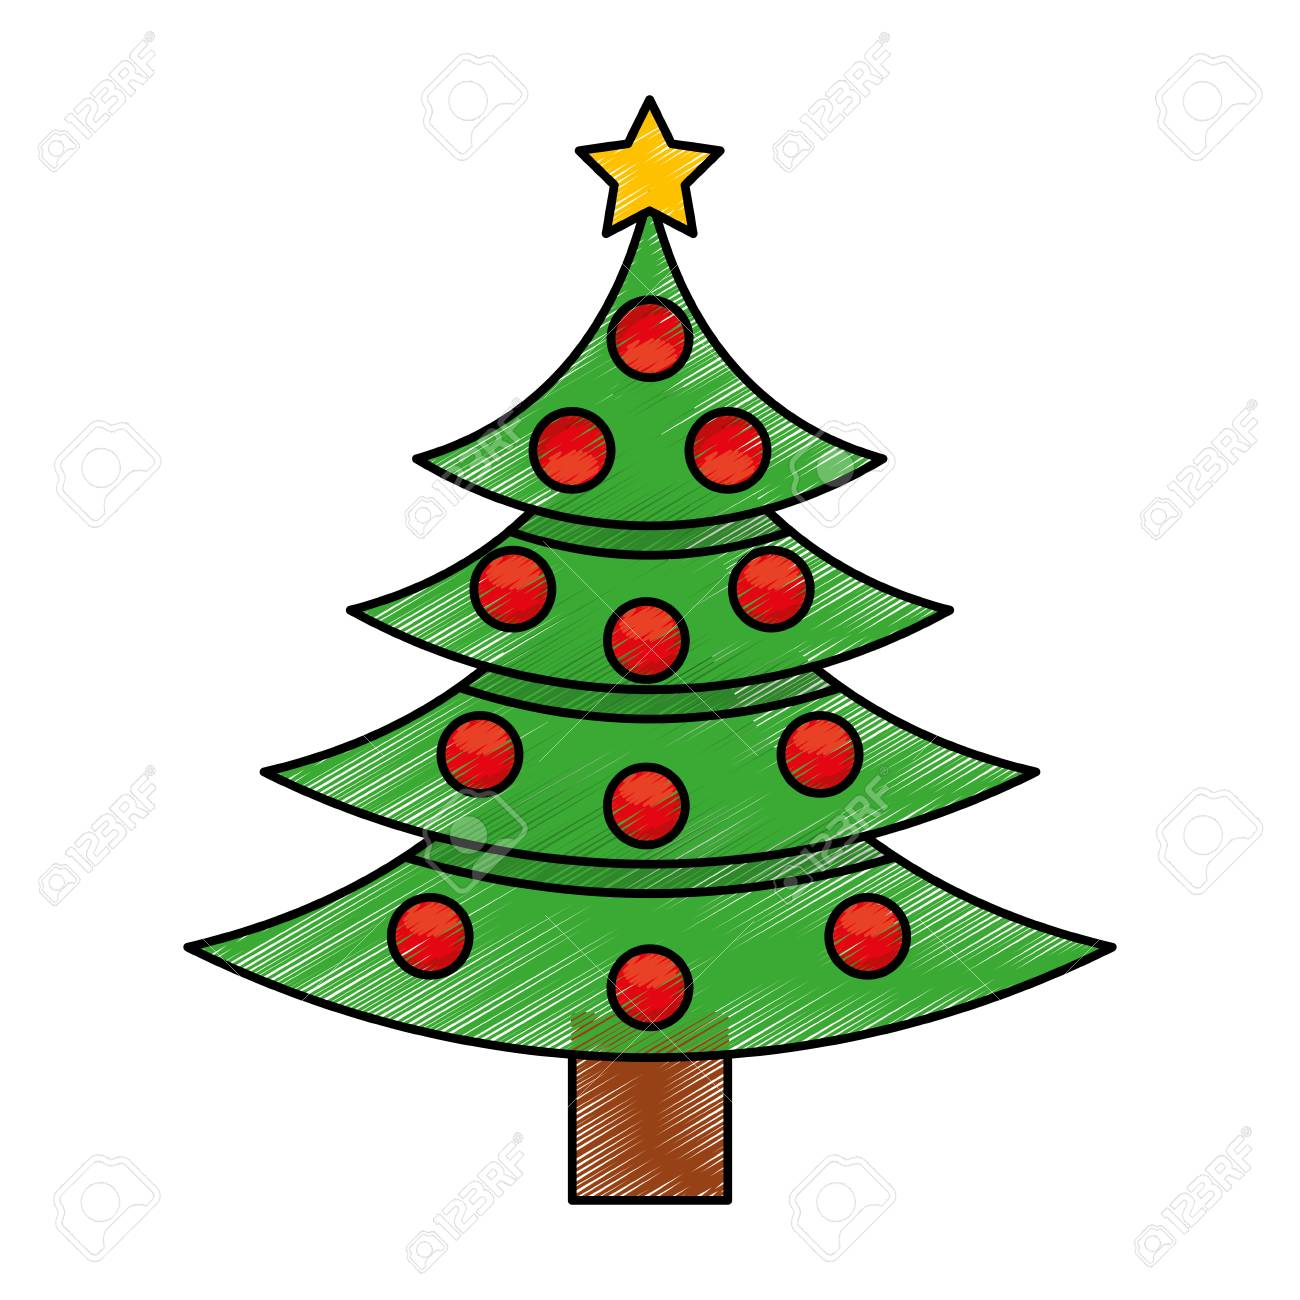 Dessin Anime D Illustration Vectorielle De Sapin De Noel Clip Art Libres De Droits Vecteurs Et Illustration Image 76781109